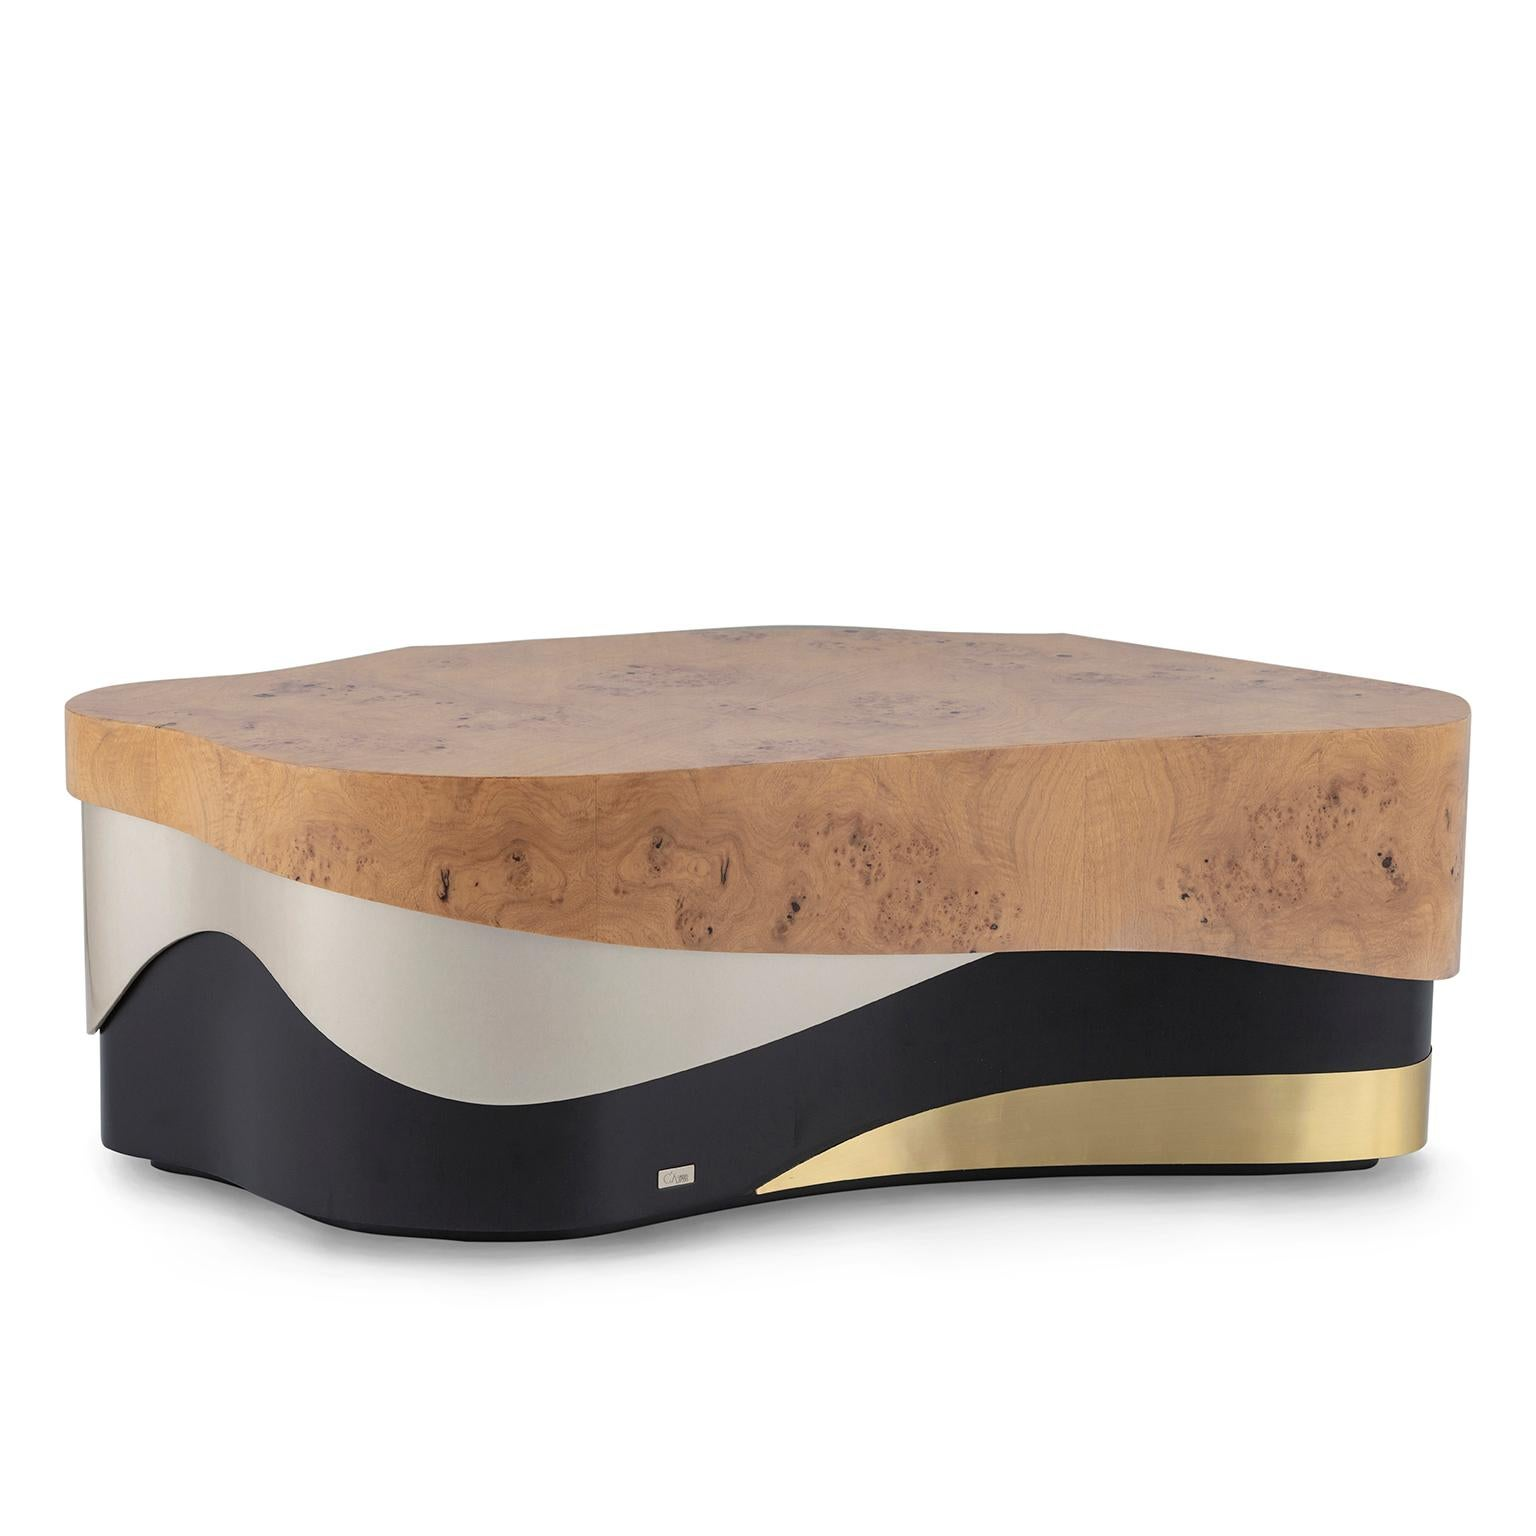 Sistelo Coffee Table Oak Root Brushed Brass Black and Champagne Lacquered